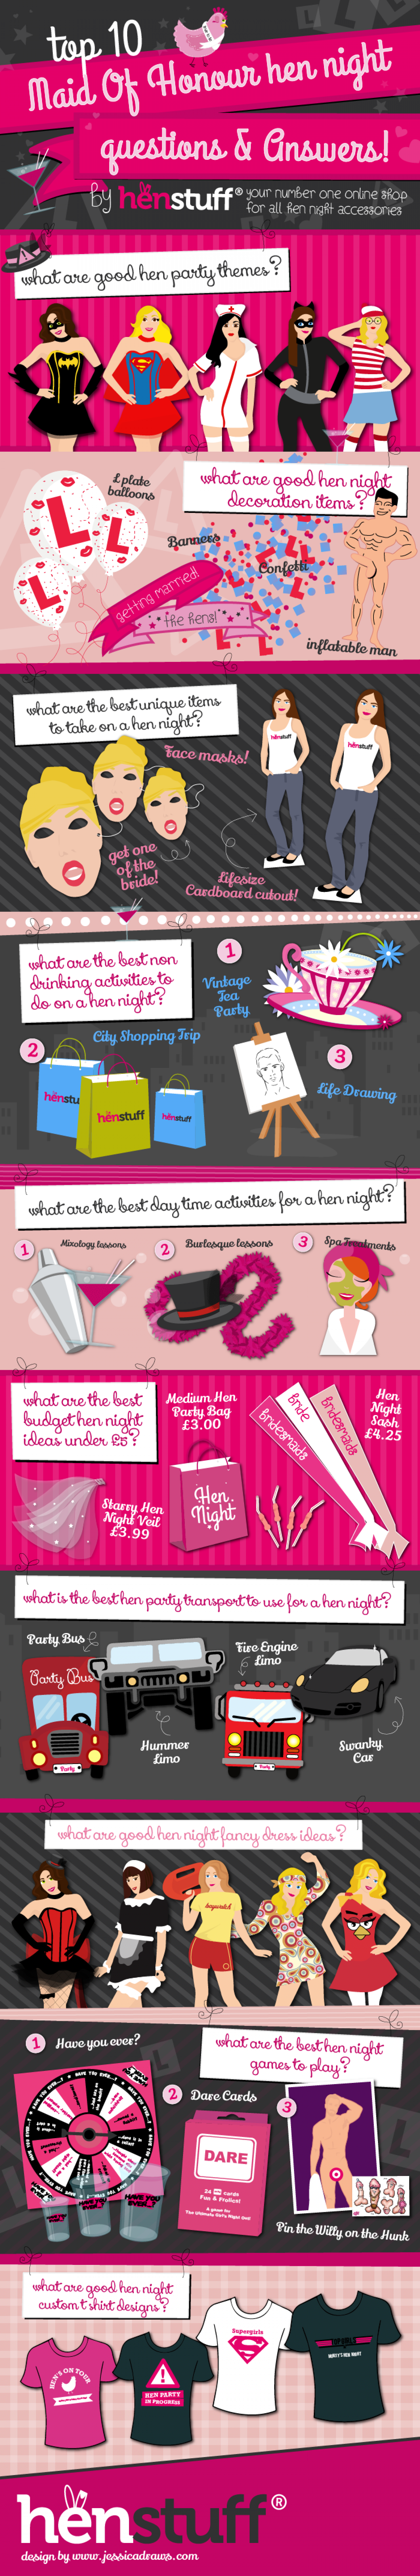 Top 10 Maid of Honour Hen Night Questions & Answers Infographic